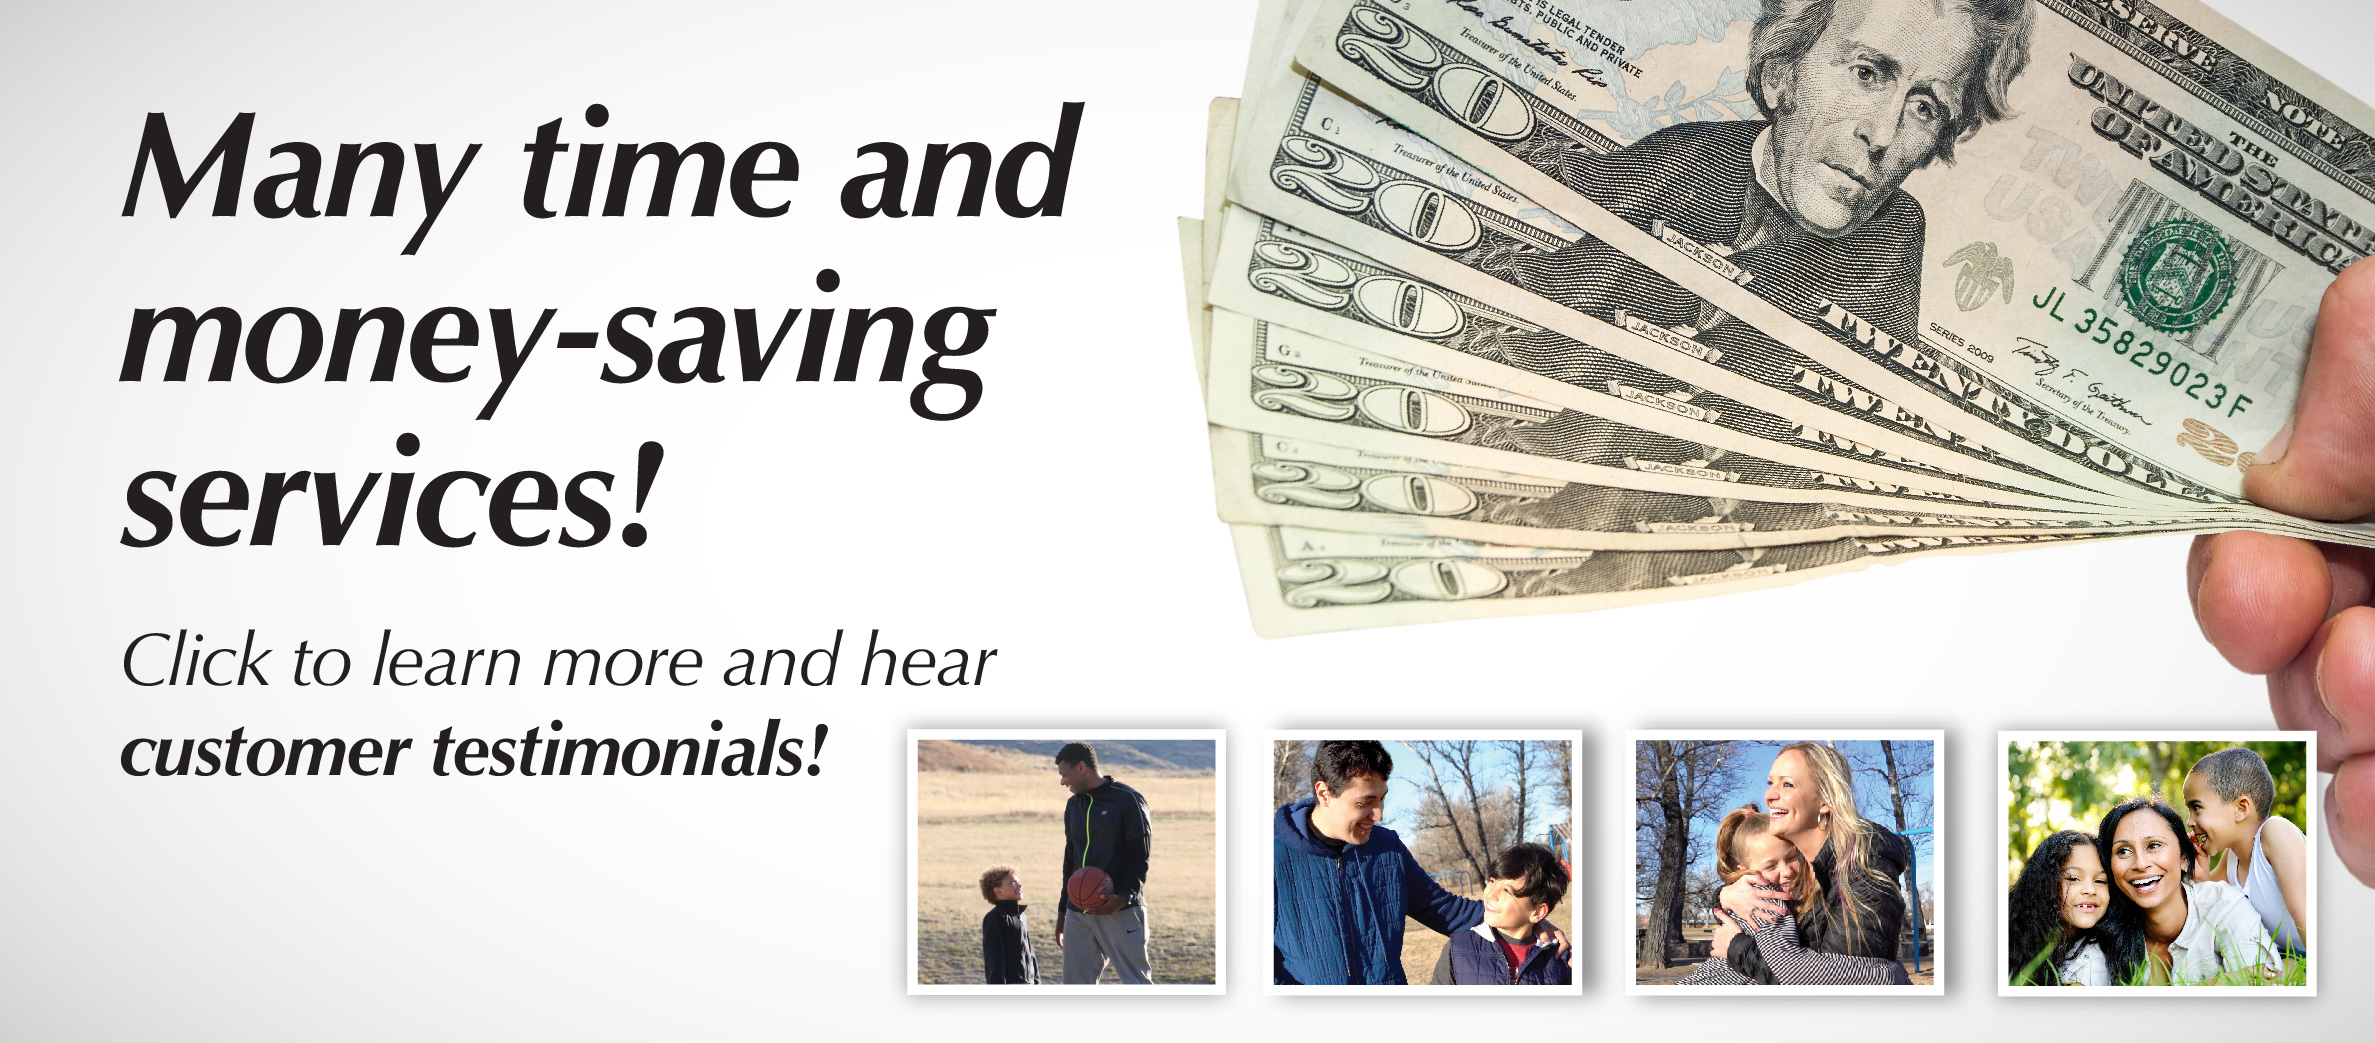 Time and money saving services at the Wyoming Child Support Program.